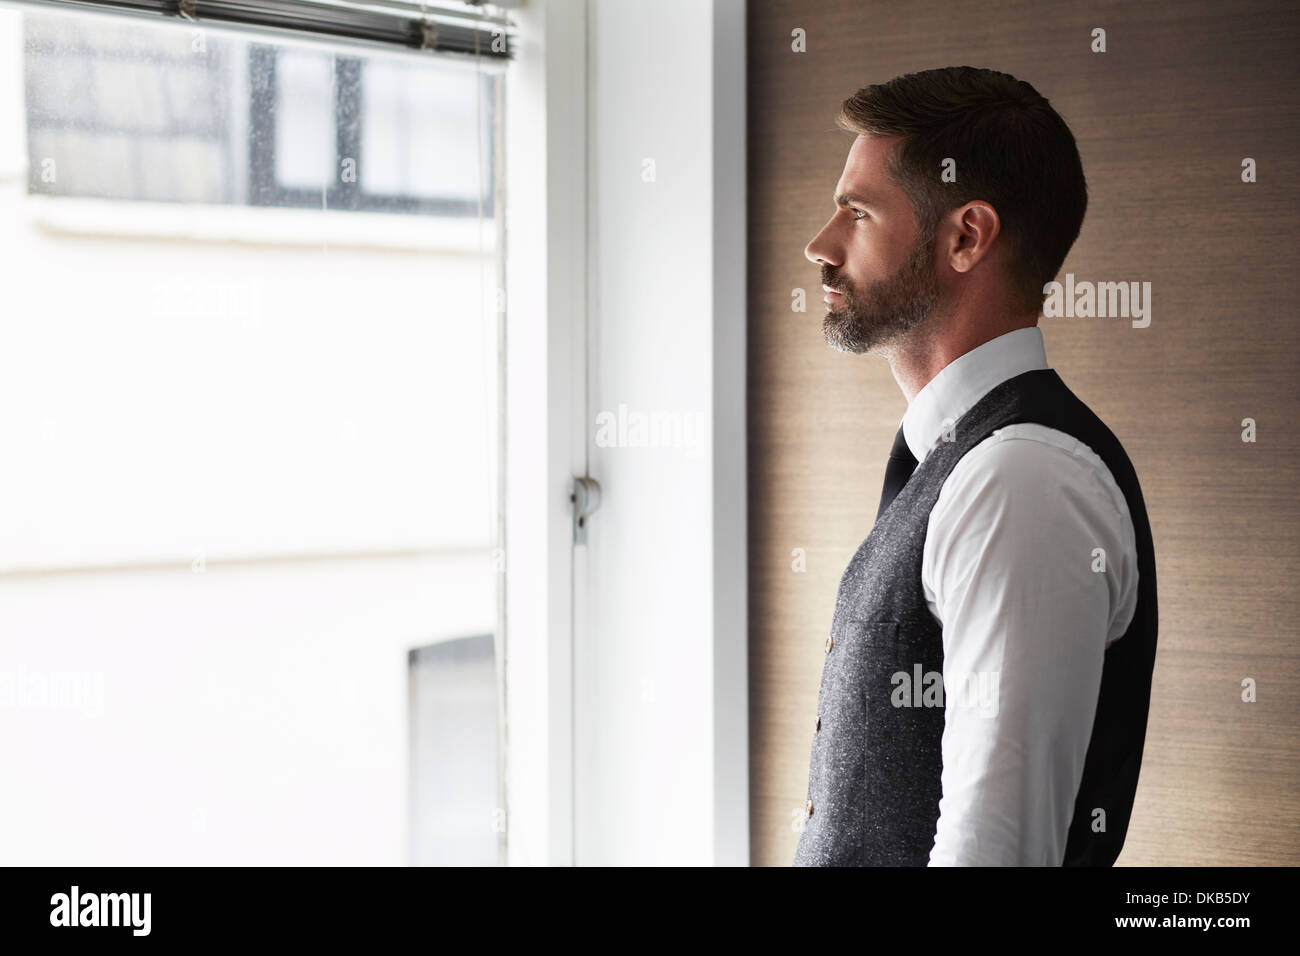 Portrait of businessman looking out of window - Stock Image